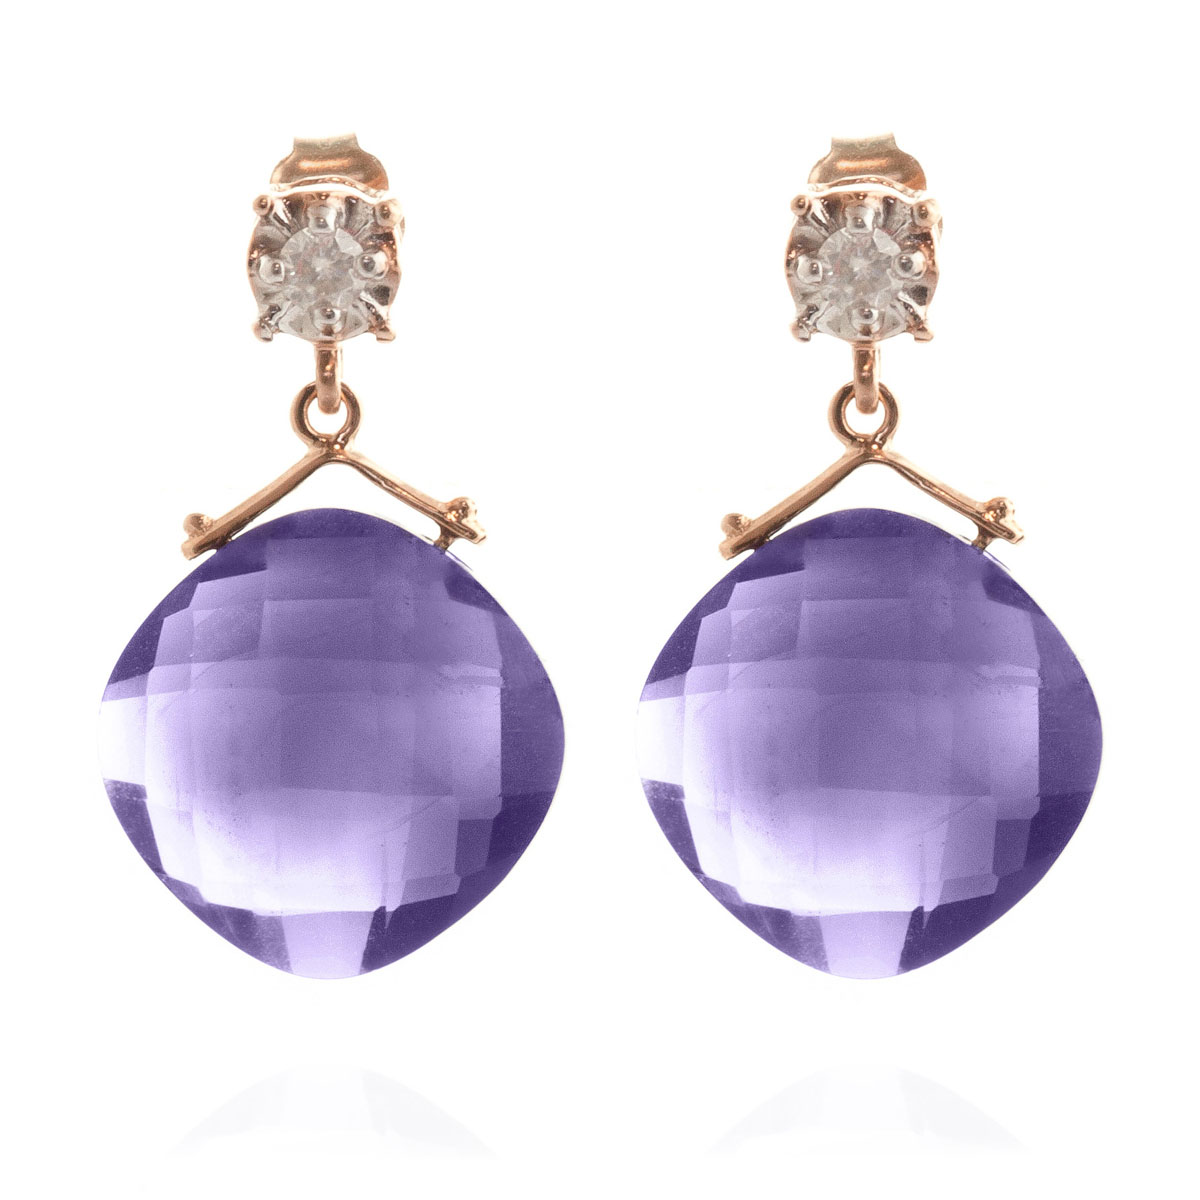 Amethyst & Diamond Deflection Stud Earrings in 9ct Rose Gold